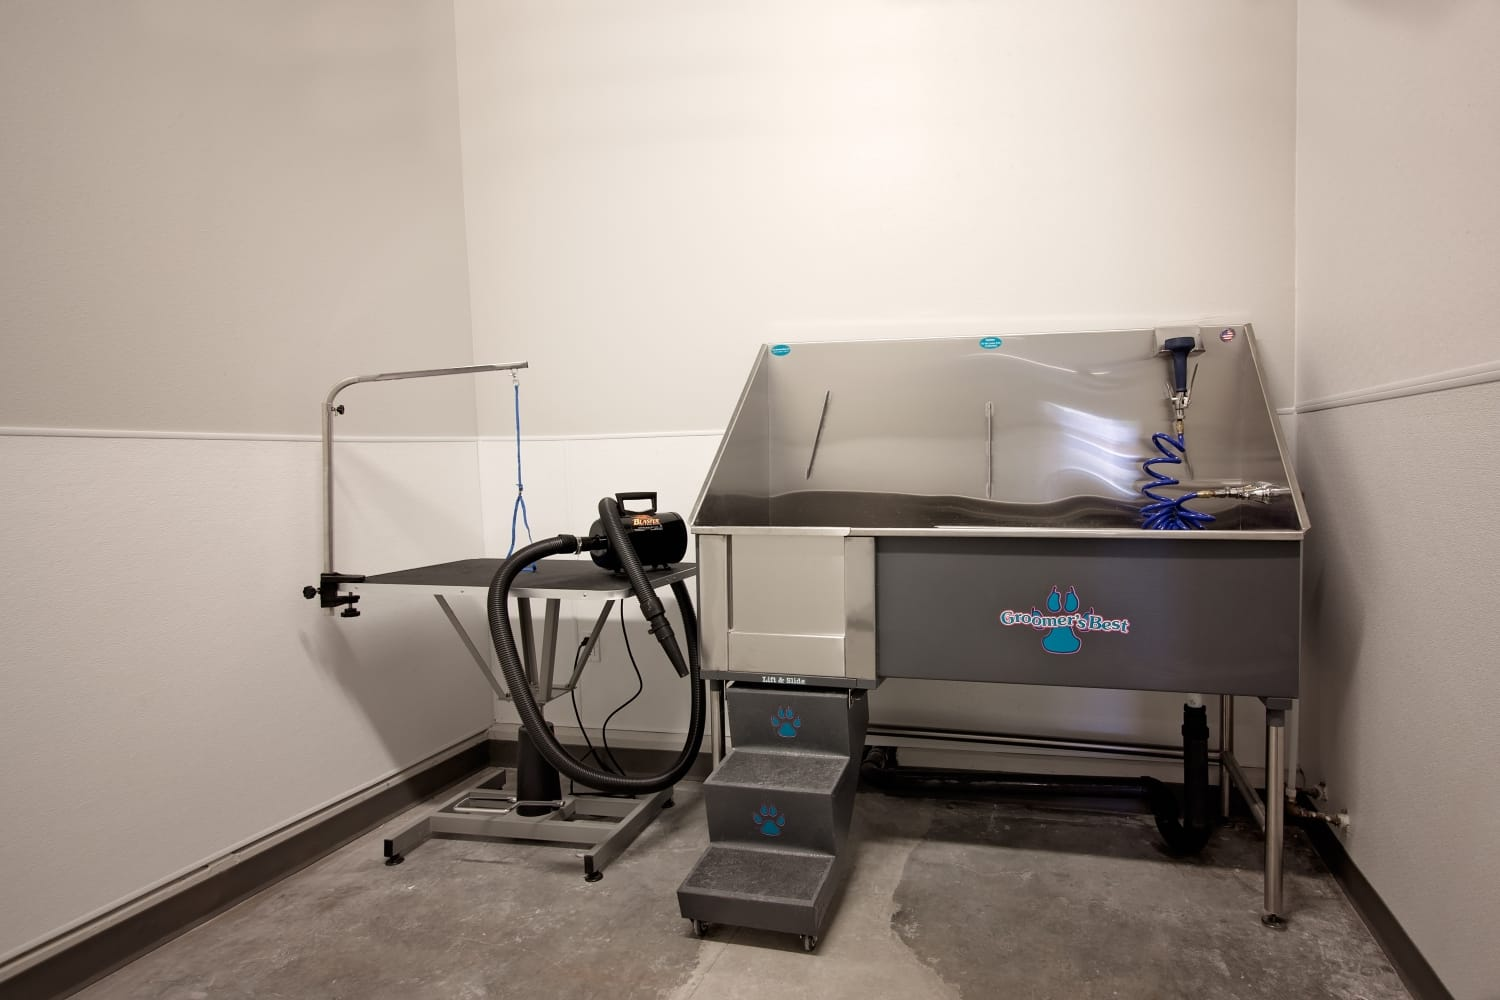 Pet washing and grooming station